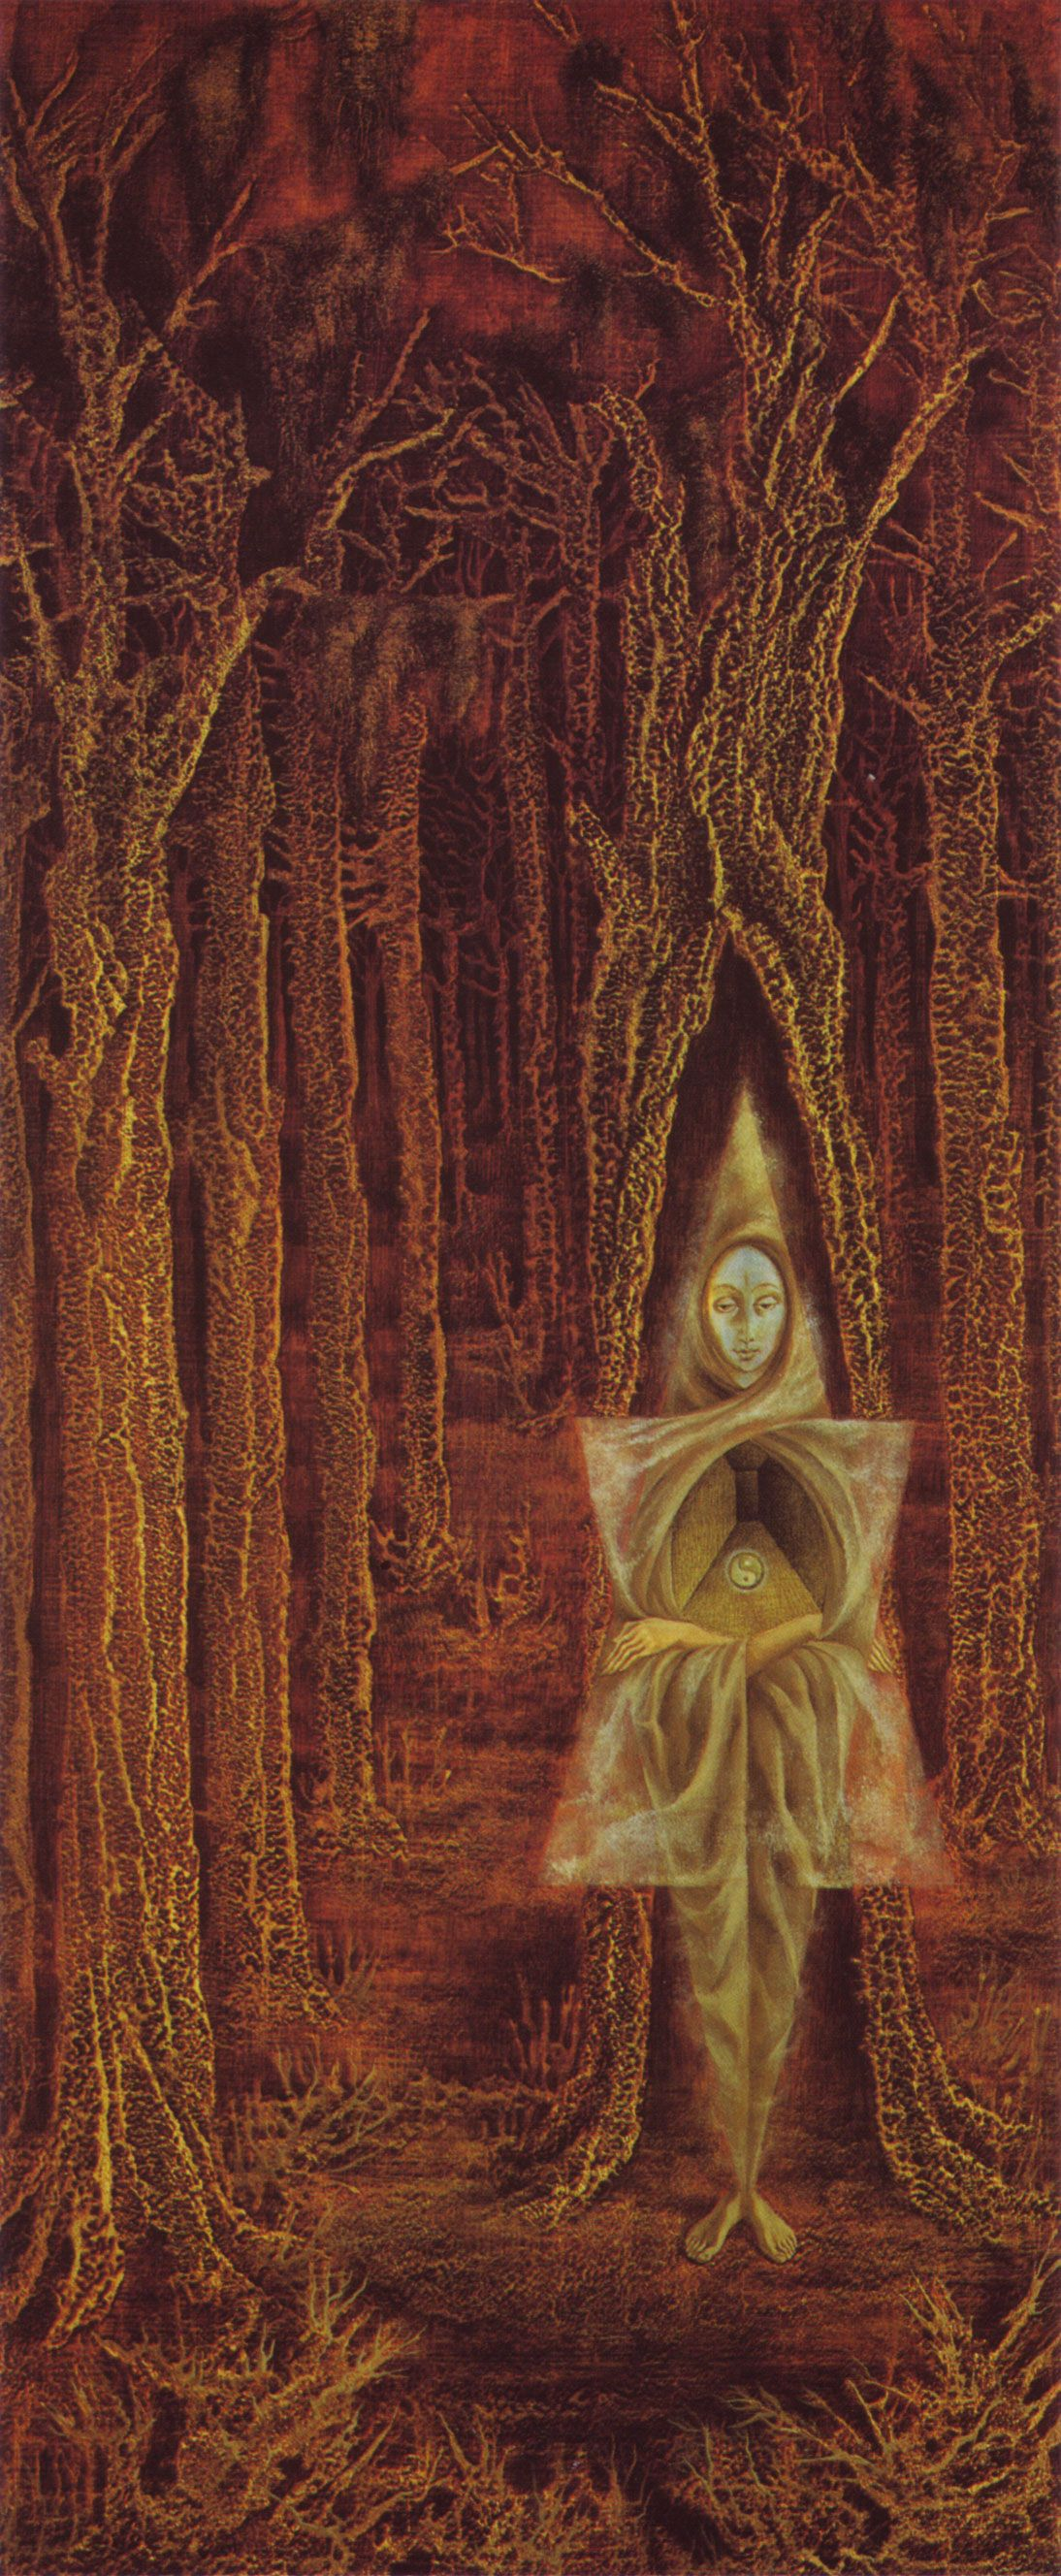 Detail from 'Ermitaño,' (Hermit), oil and mother-of-pearl on masonite, 1955, Remedios Varo